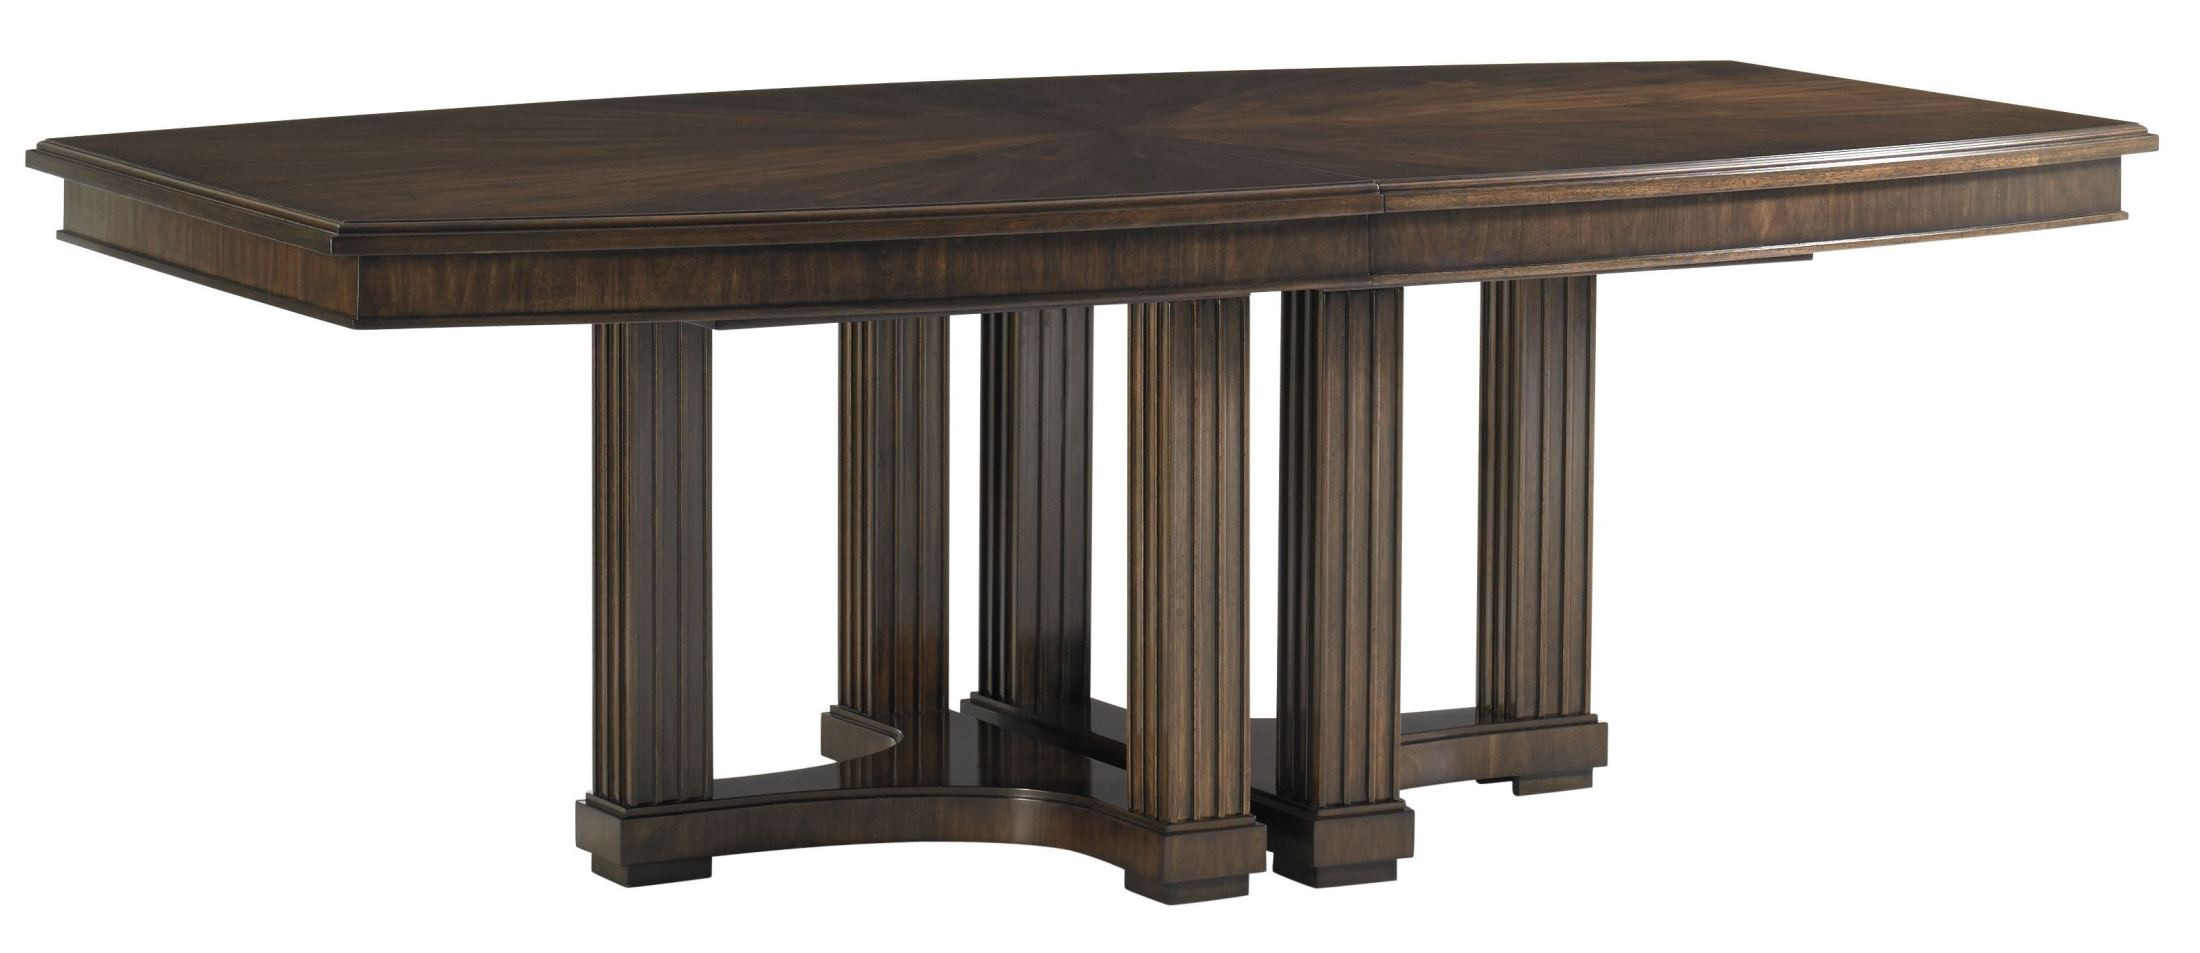 Crestaire Porter Lola Double Pedestal Extendable Dining Table From